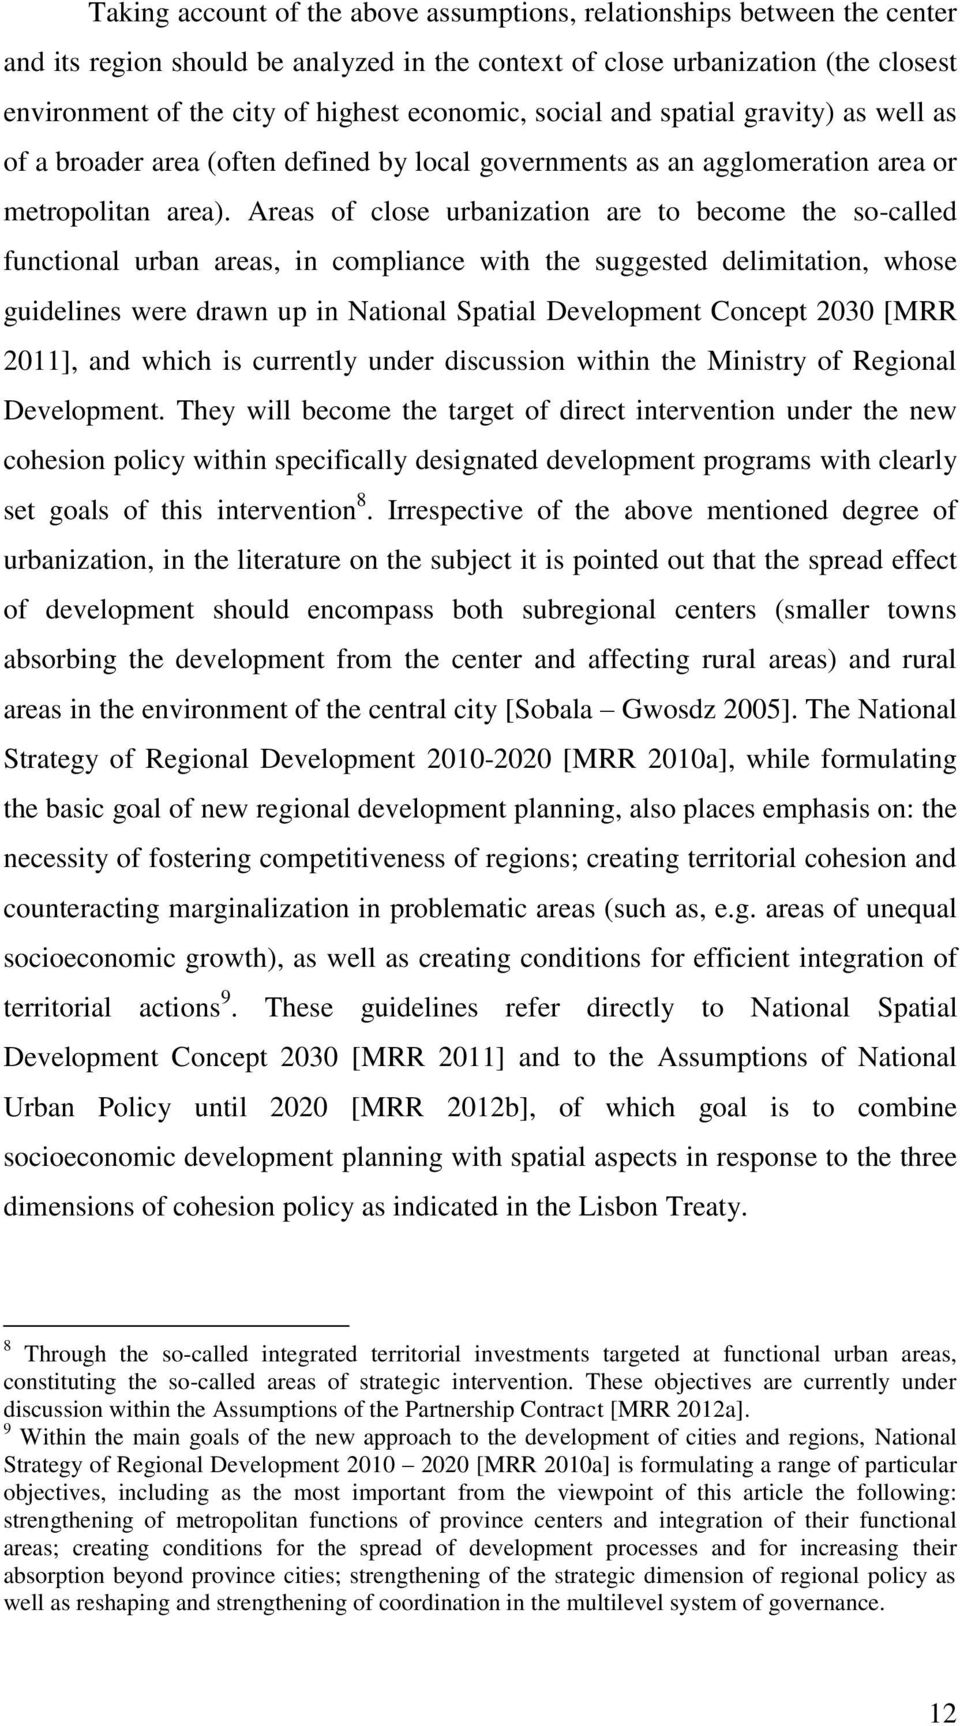 Areas of close urbanization are to become the so-called functional urban areas, in compliance with the suggested delimitation, whose guidelines were drawn up in National Spatial Development Concept